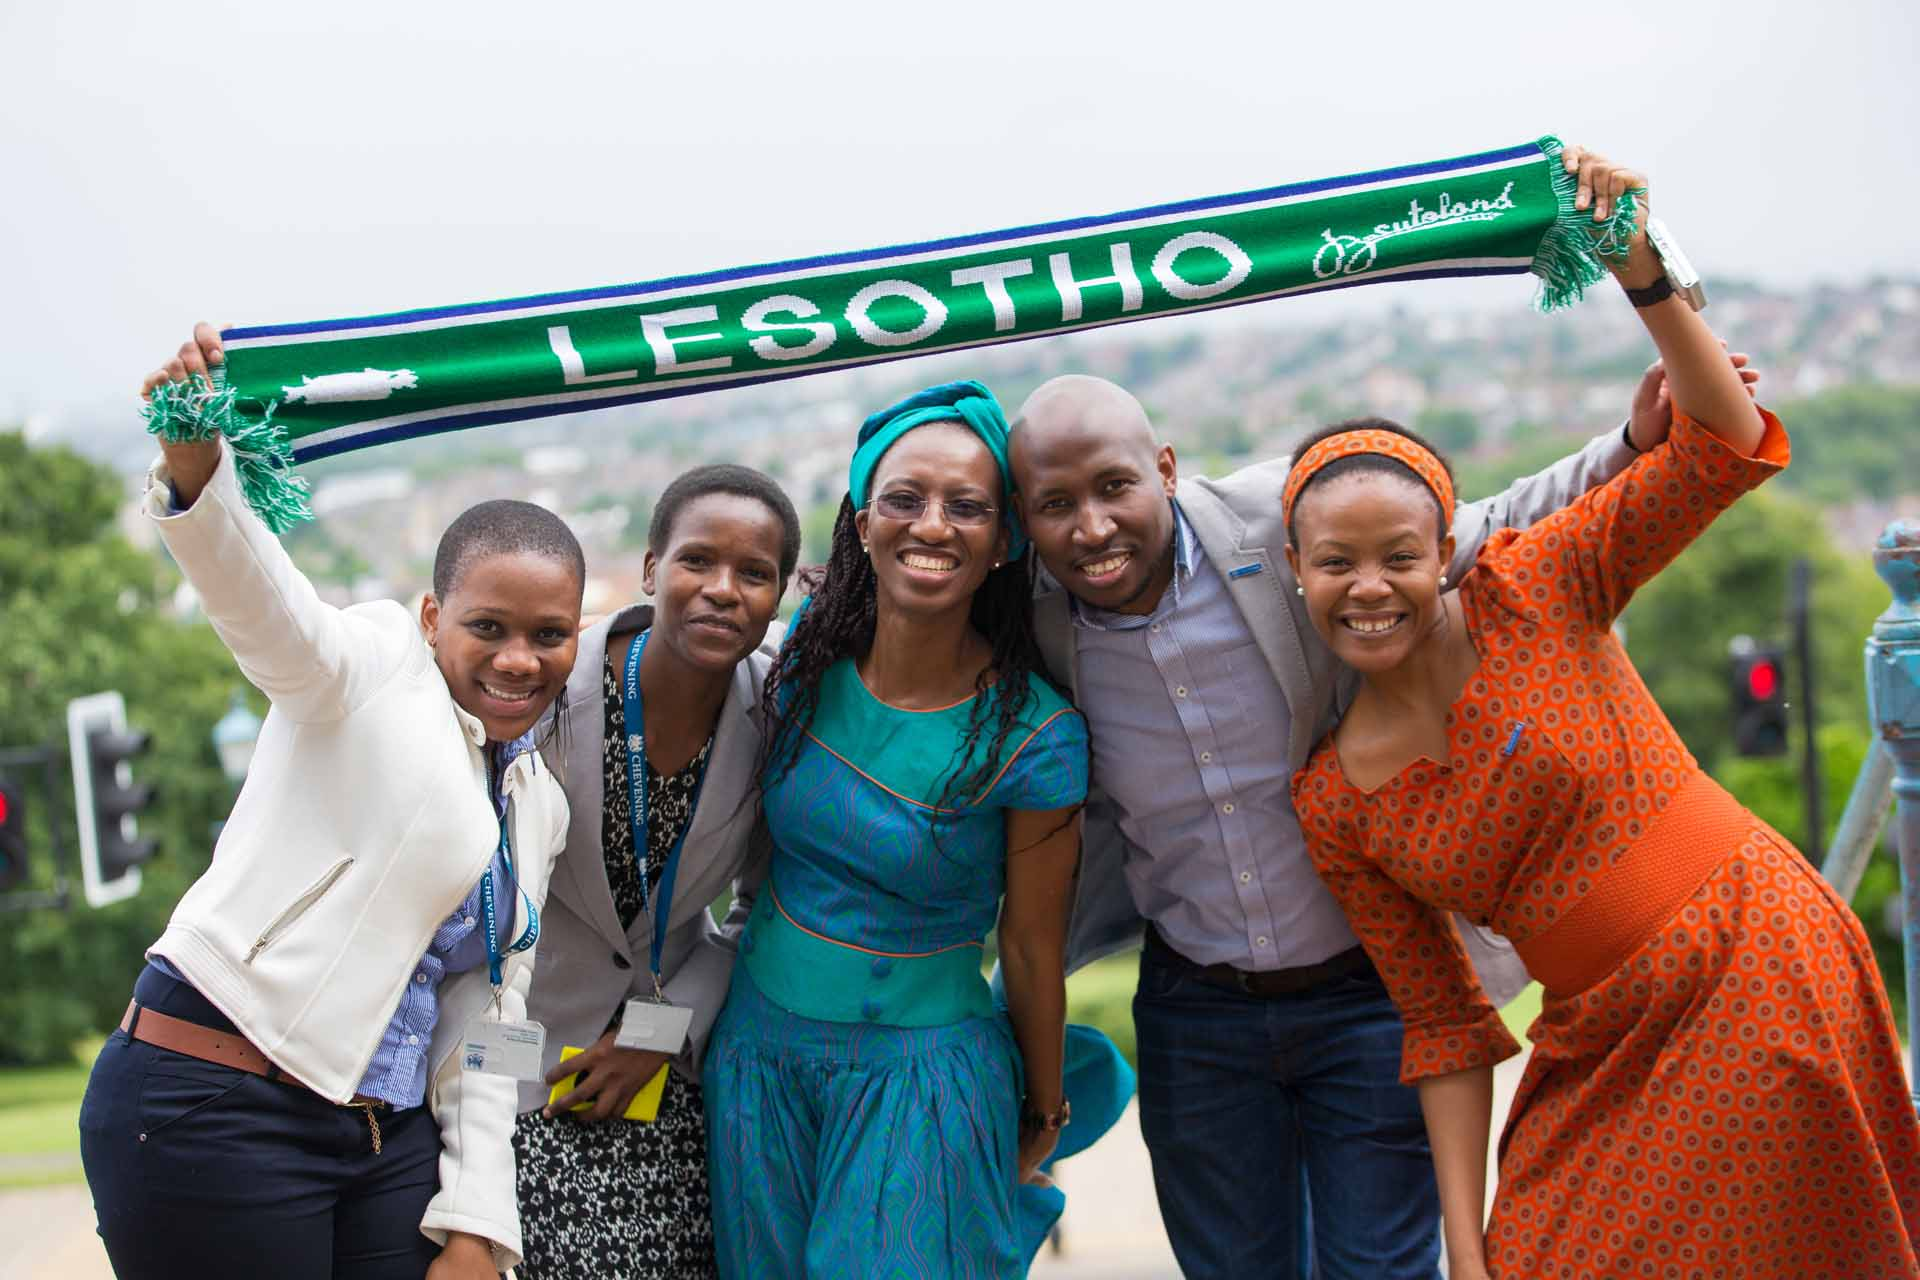 Chevening in Lesotho